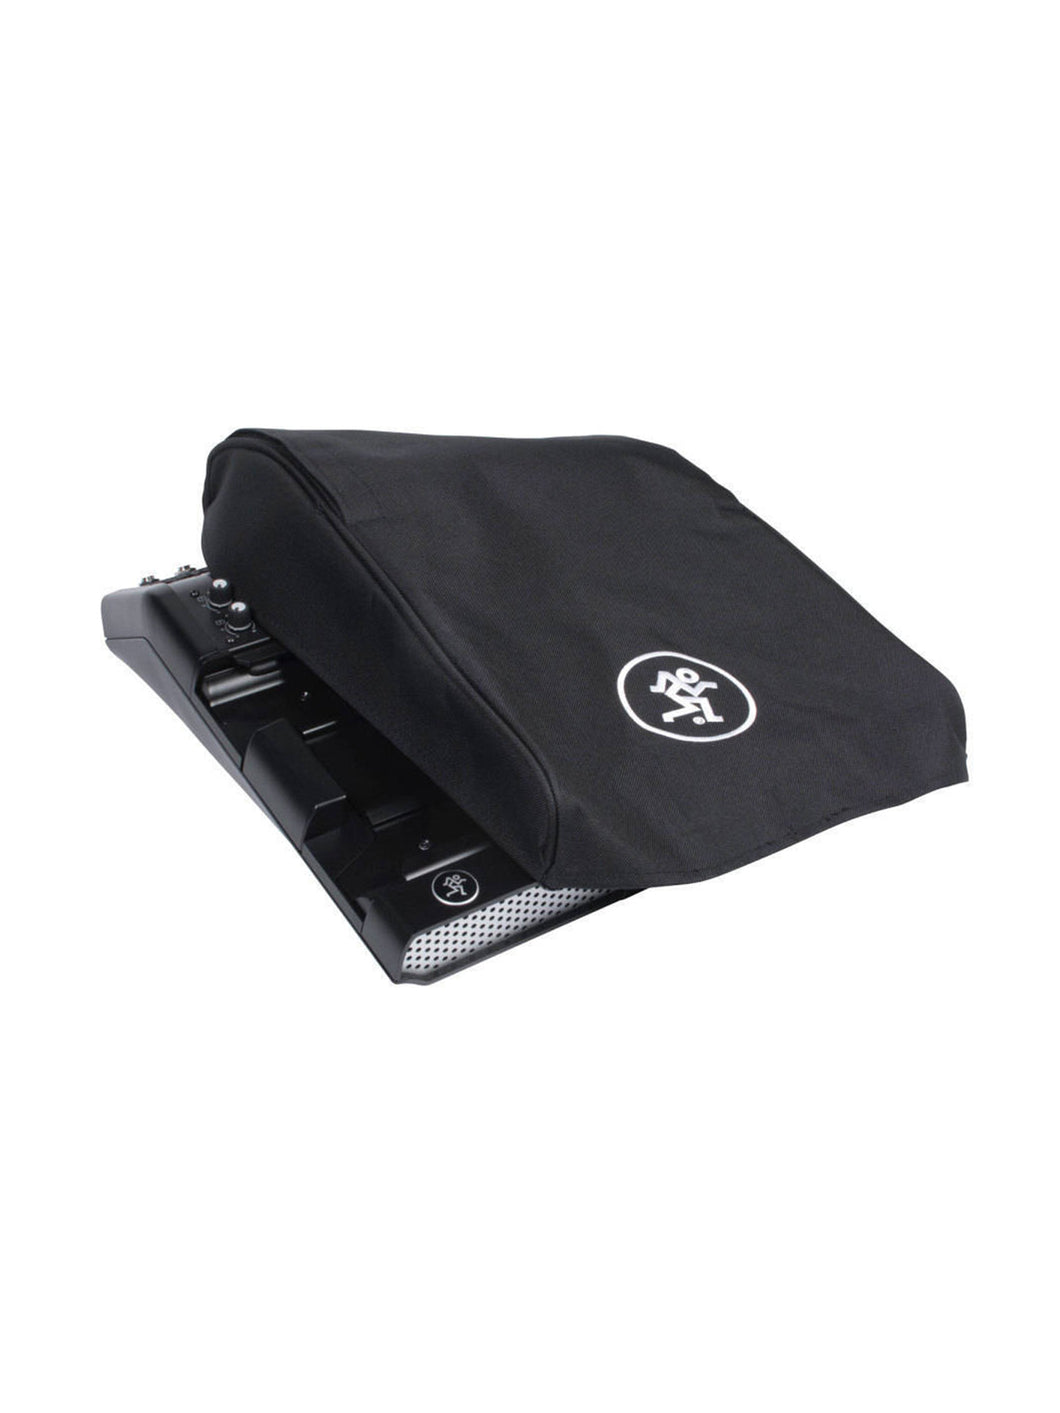 Mackie Dust Cover for DL1608